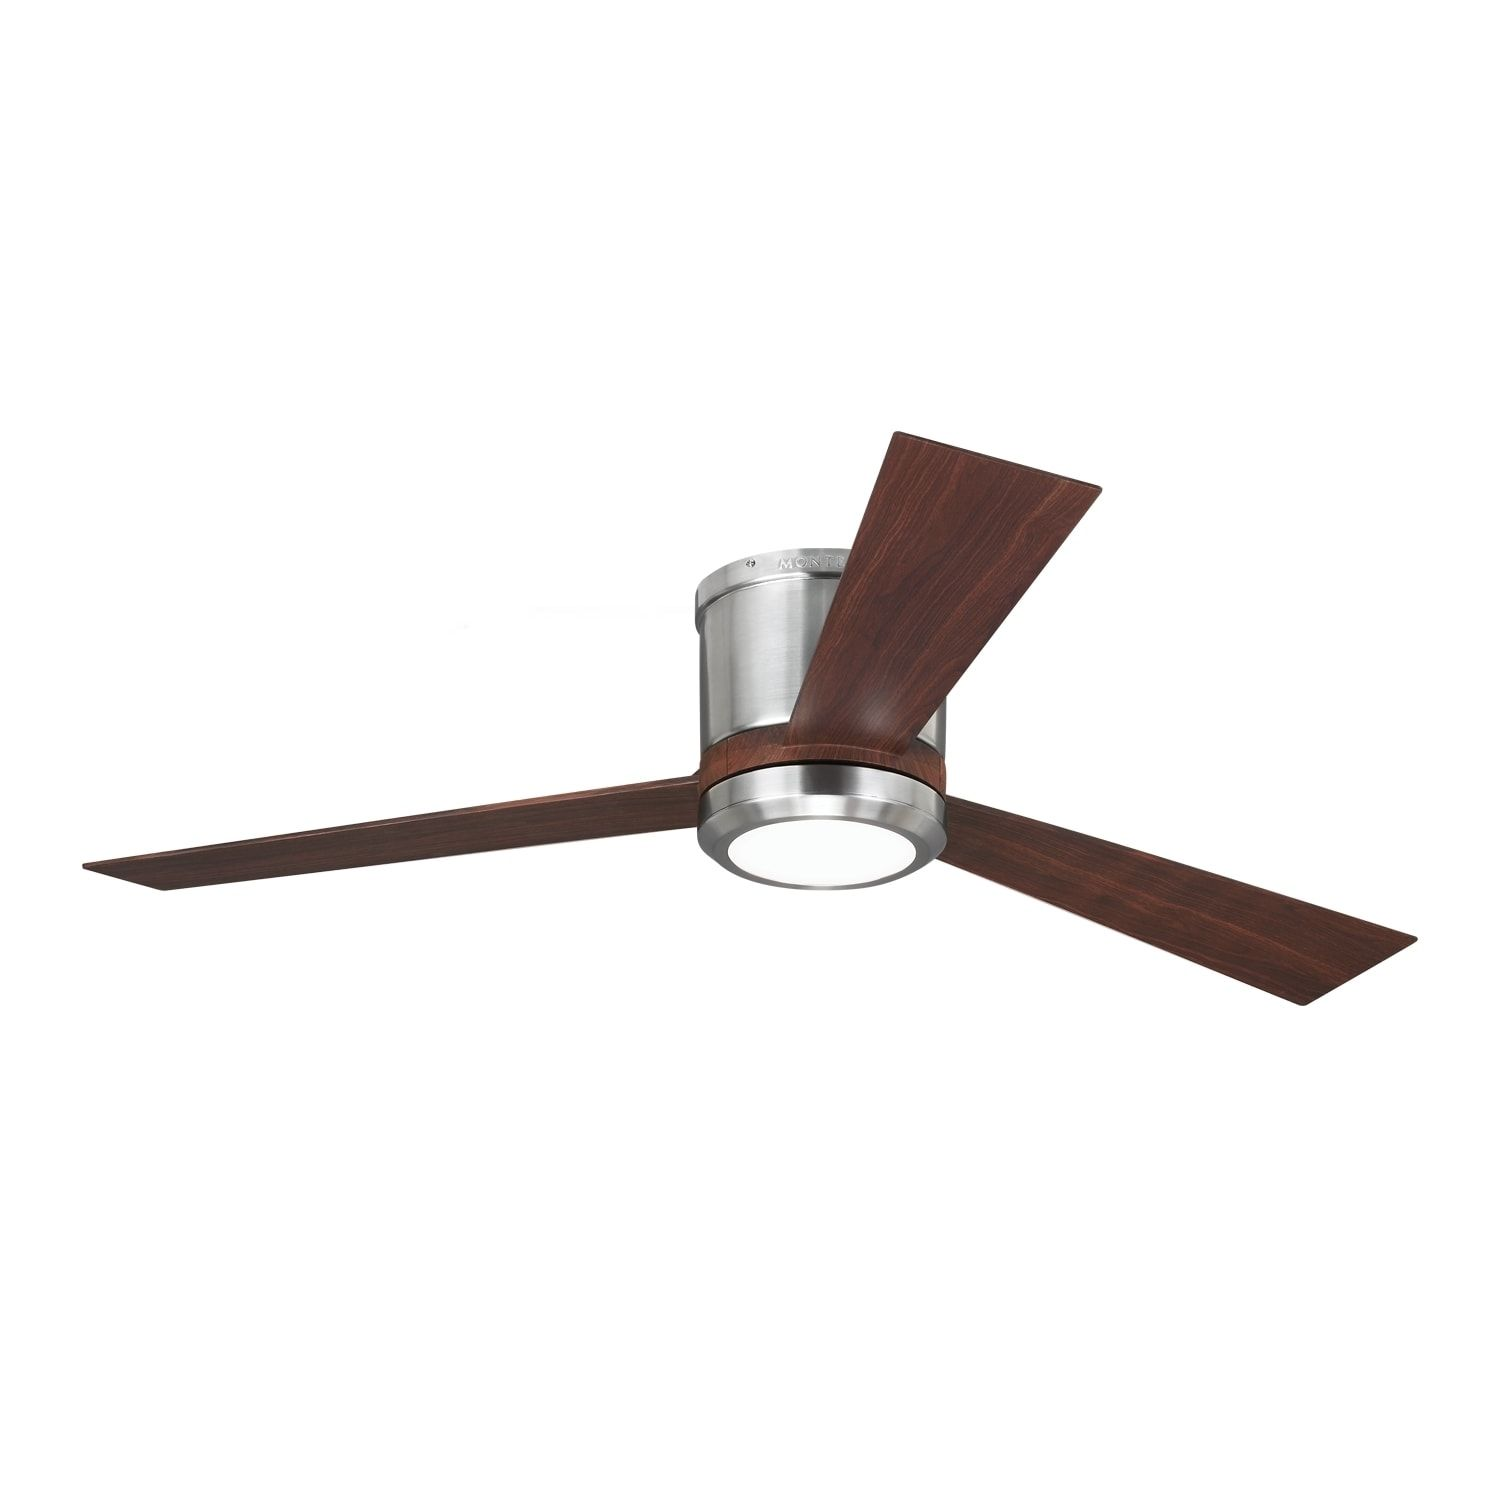 Monte carlo clarity brushed steel 52 inch ceiling fan overstock monte carlo clarity brushed steel 52 inch ceiling fan overstock shopping aloadofball Images